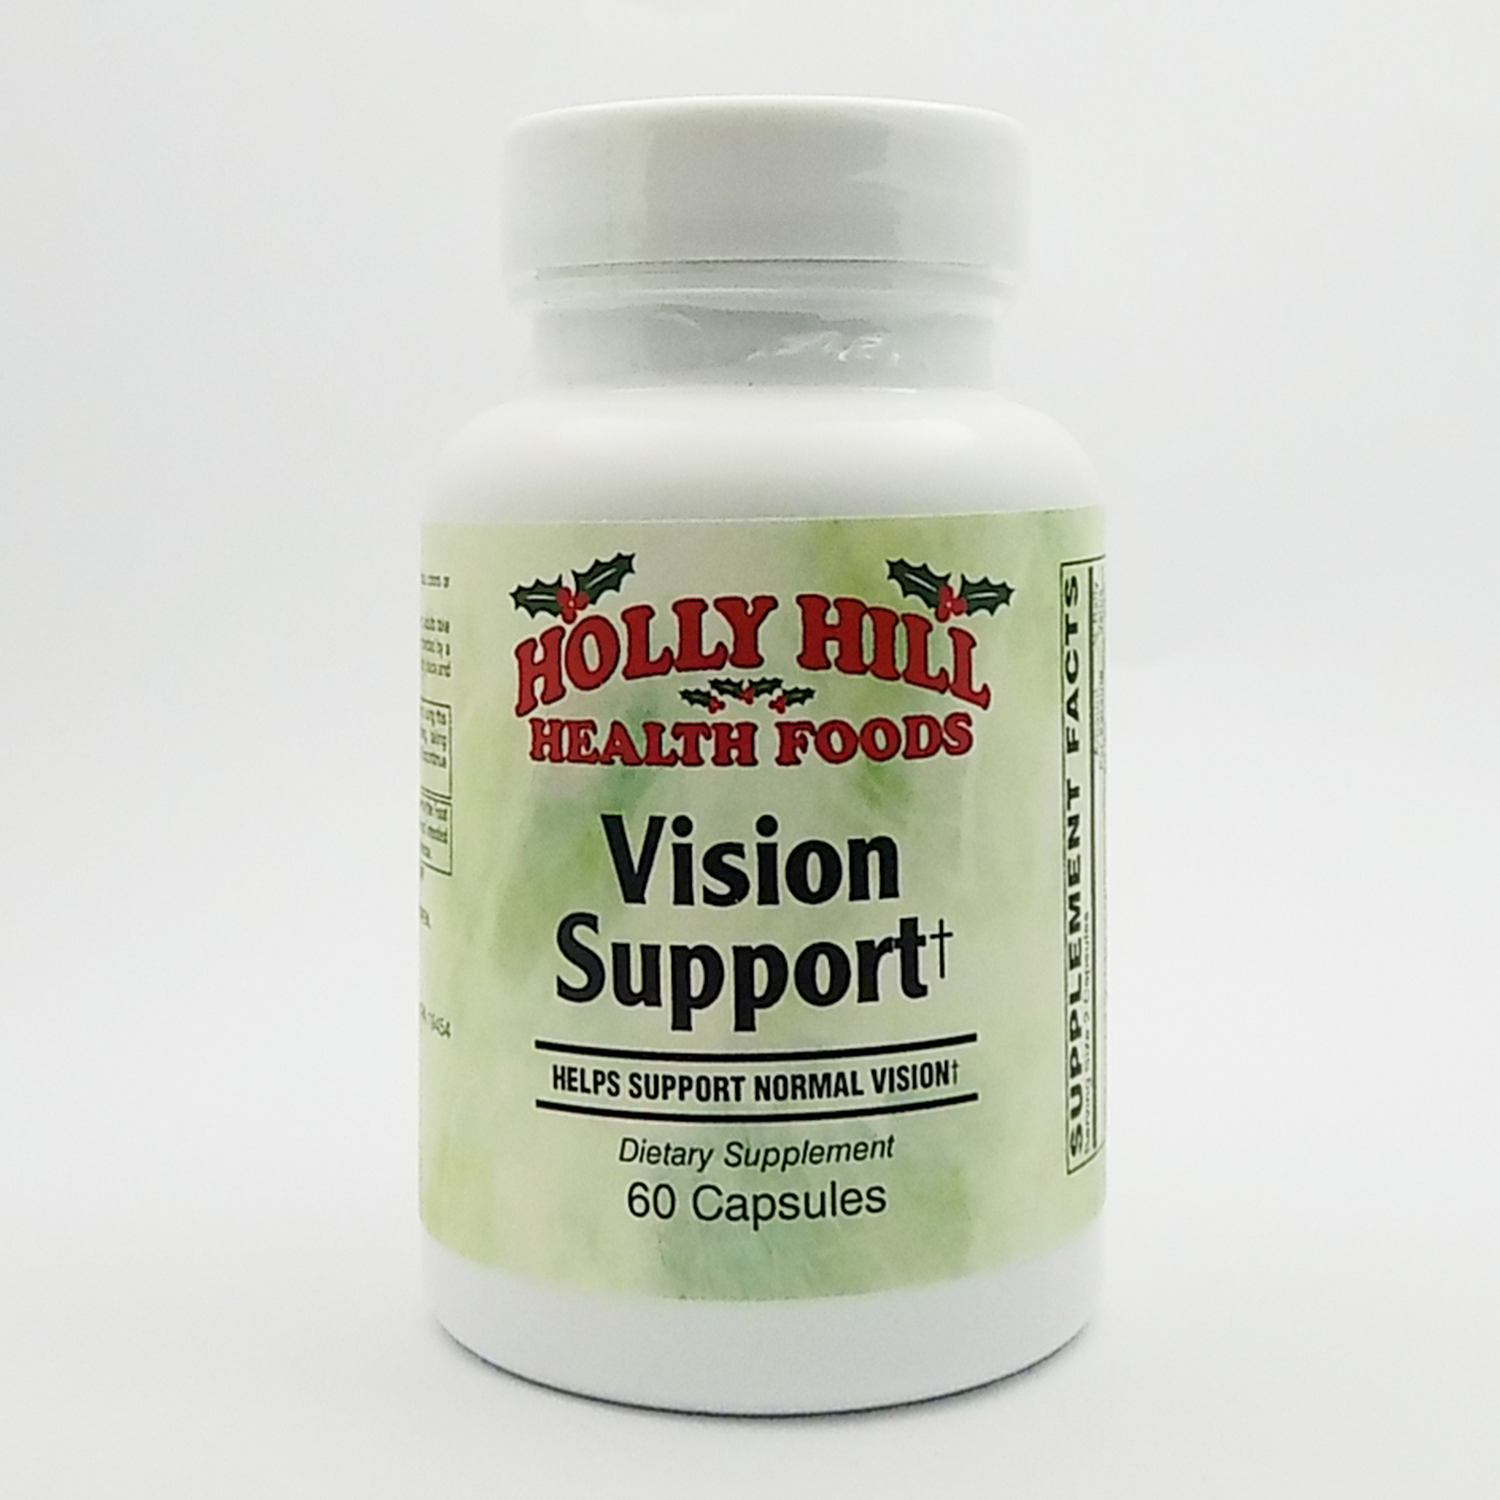 Holly Hill Health Foods, Vision Support, 60 Capsules